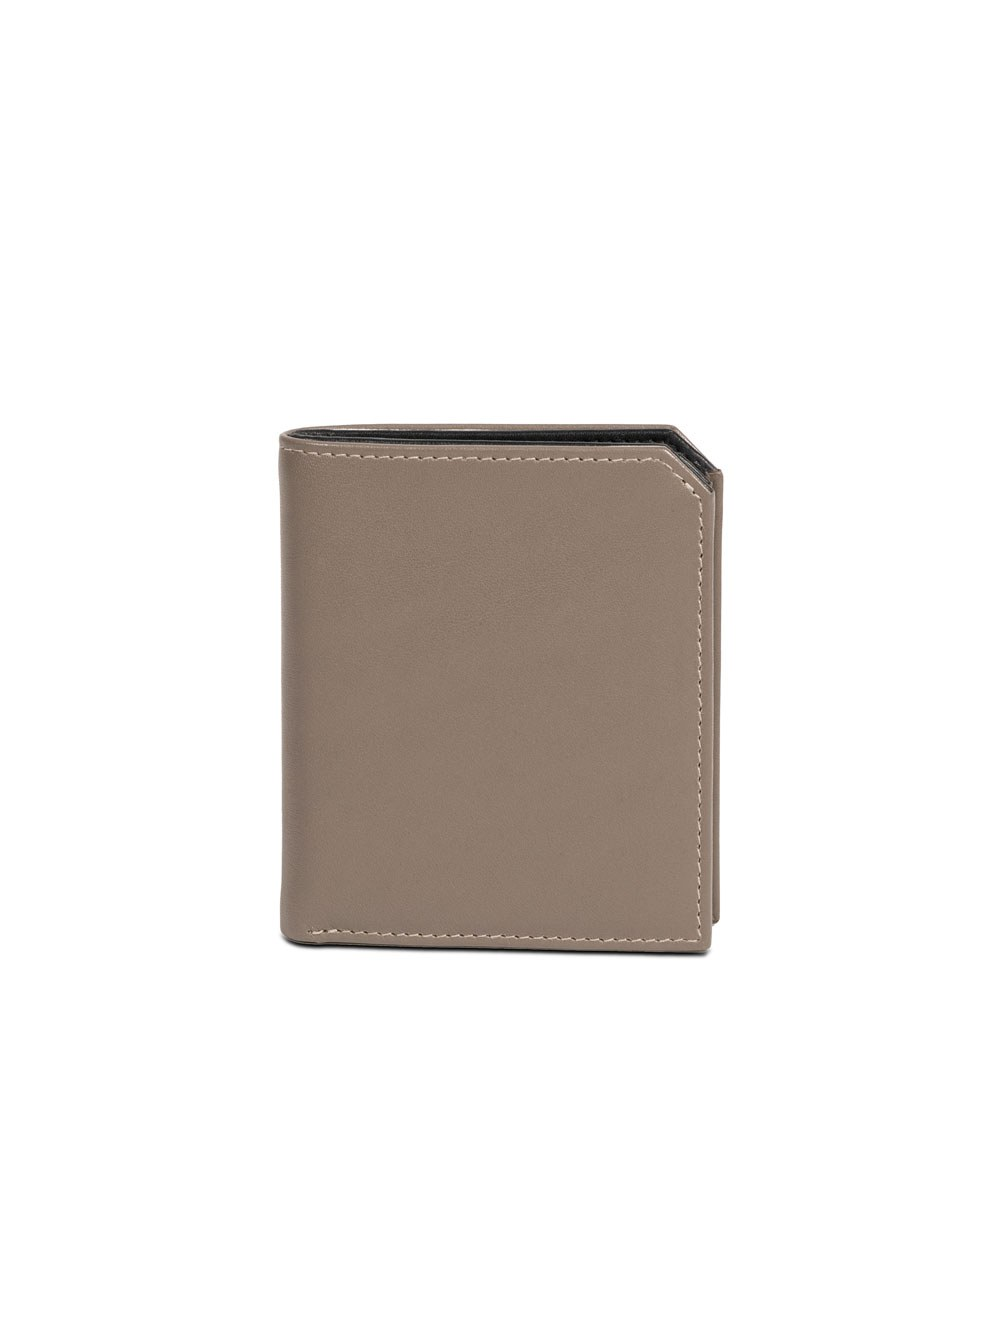 Wallet And Card Holder - Taupe